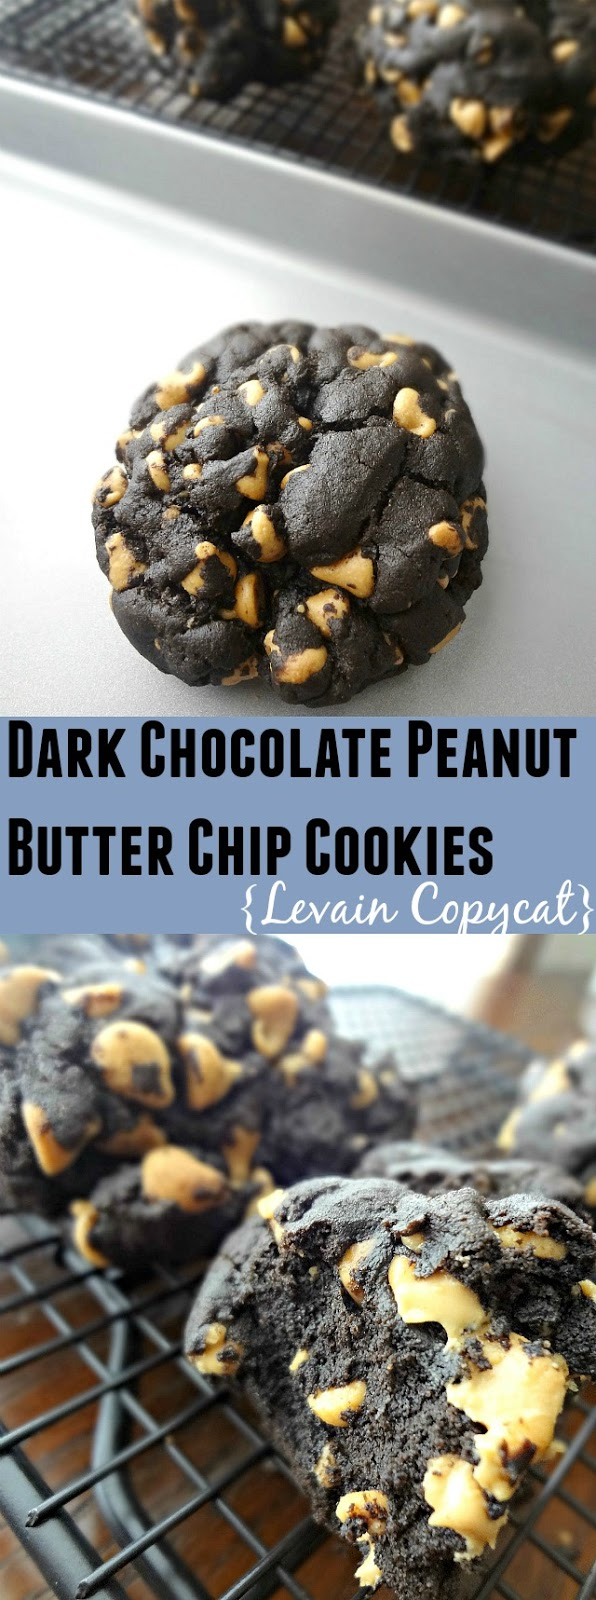 Dark Chocolate Peanut Butter Chip Cookies {Levain Copycat}